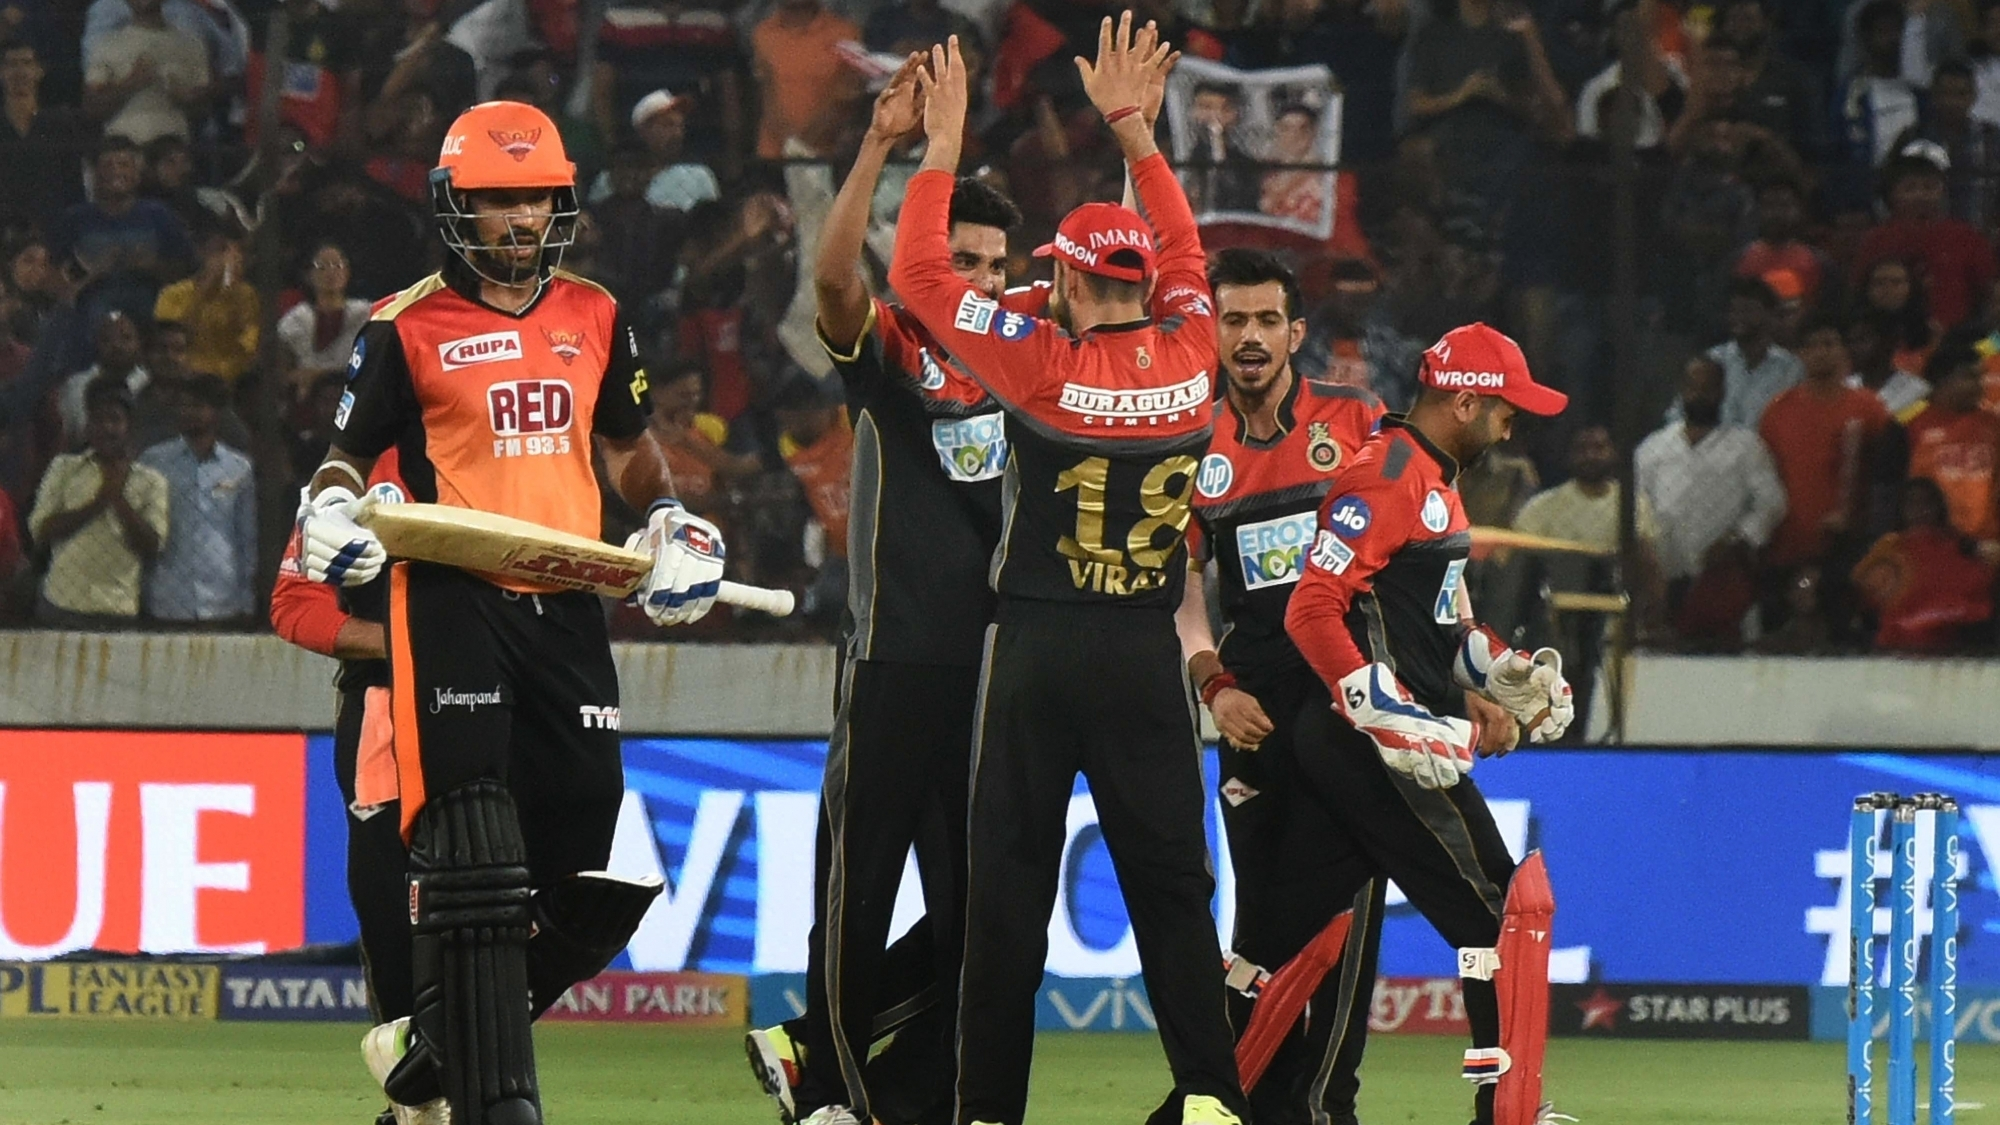 IPL 2018: SRH v RCB - Siraj and Southee's brilliance with the ball restrict SRH to 146; Williamson hits fifty